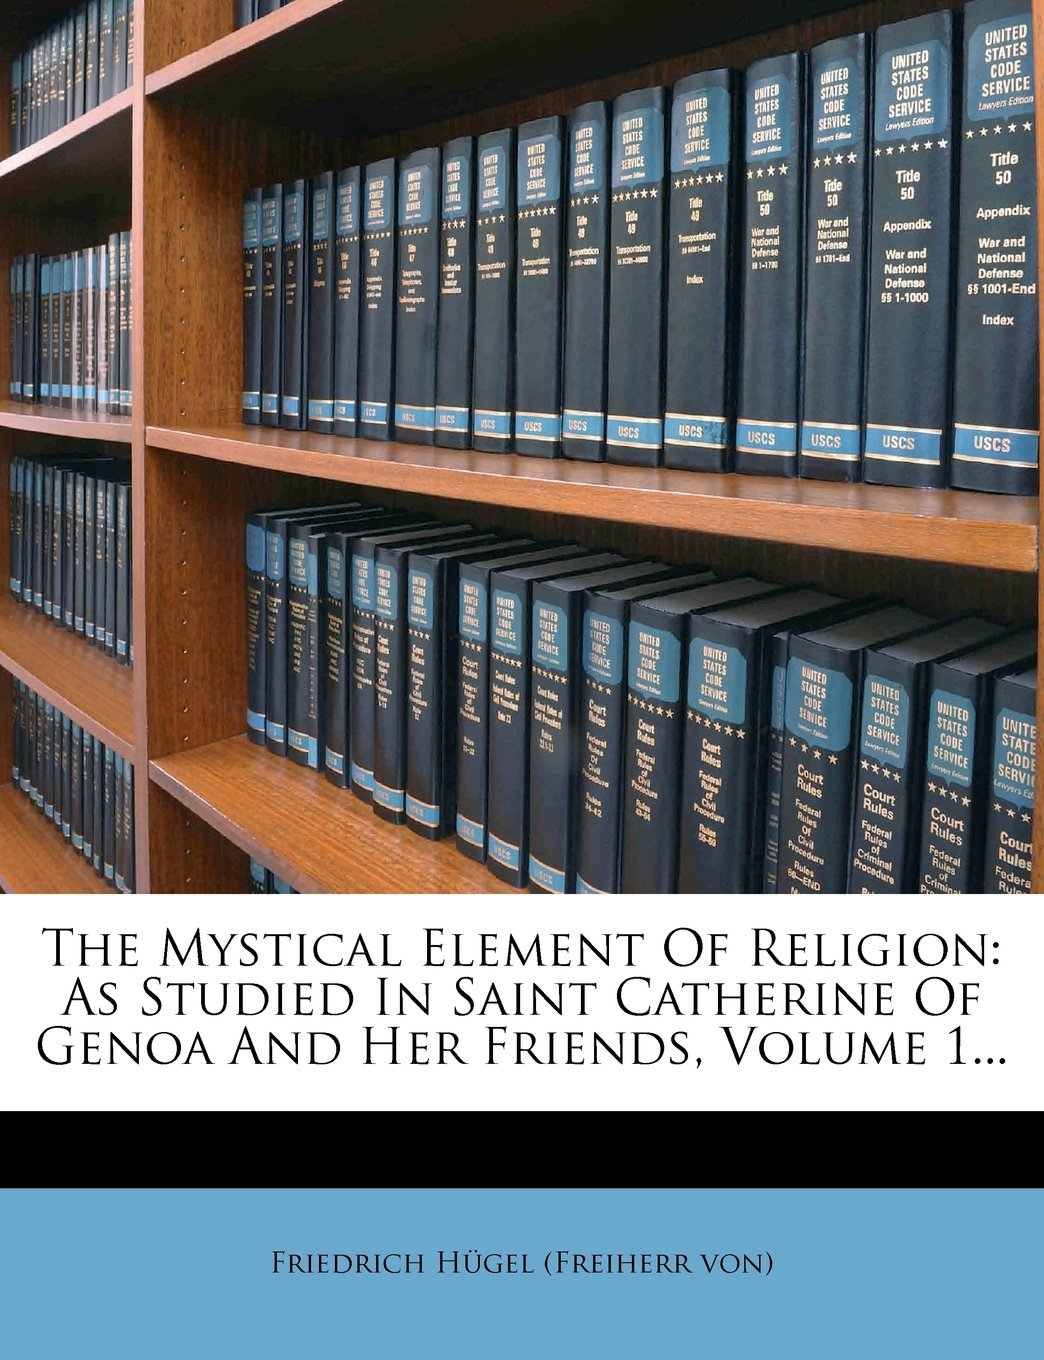 Download The Mystical Element Of Religion: As Studied In Saint Catherine Of Genoa And Her Friends, Volume 1... PDF